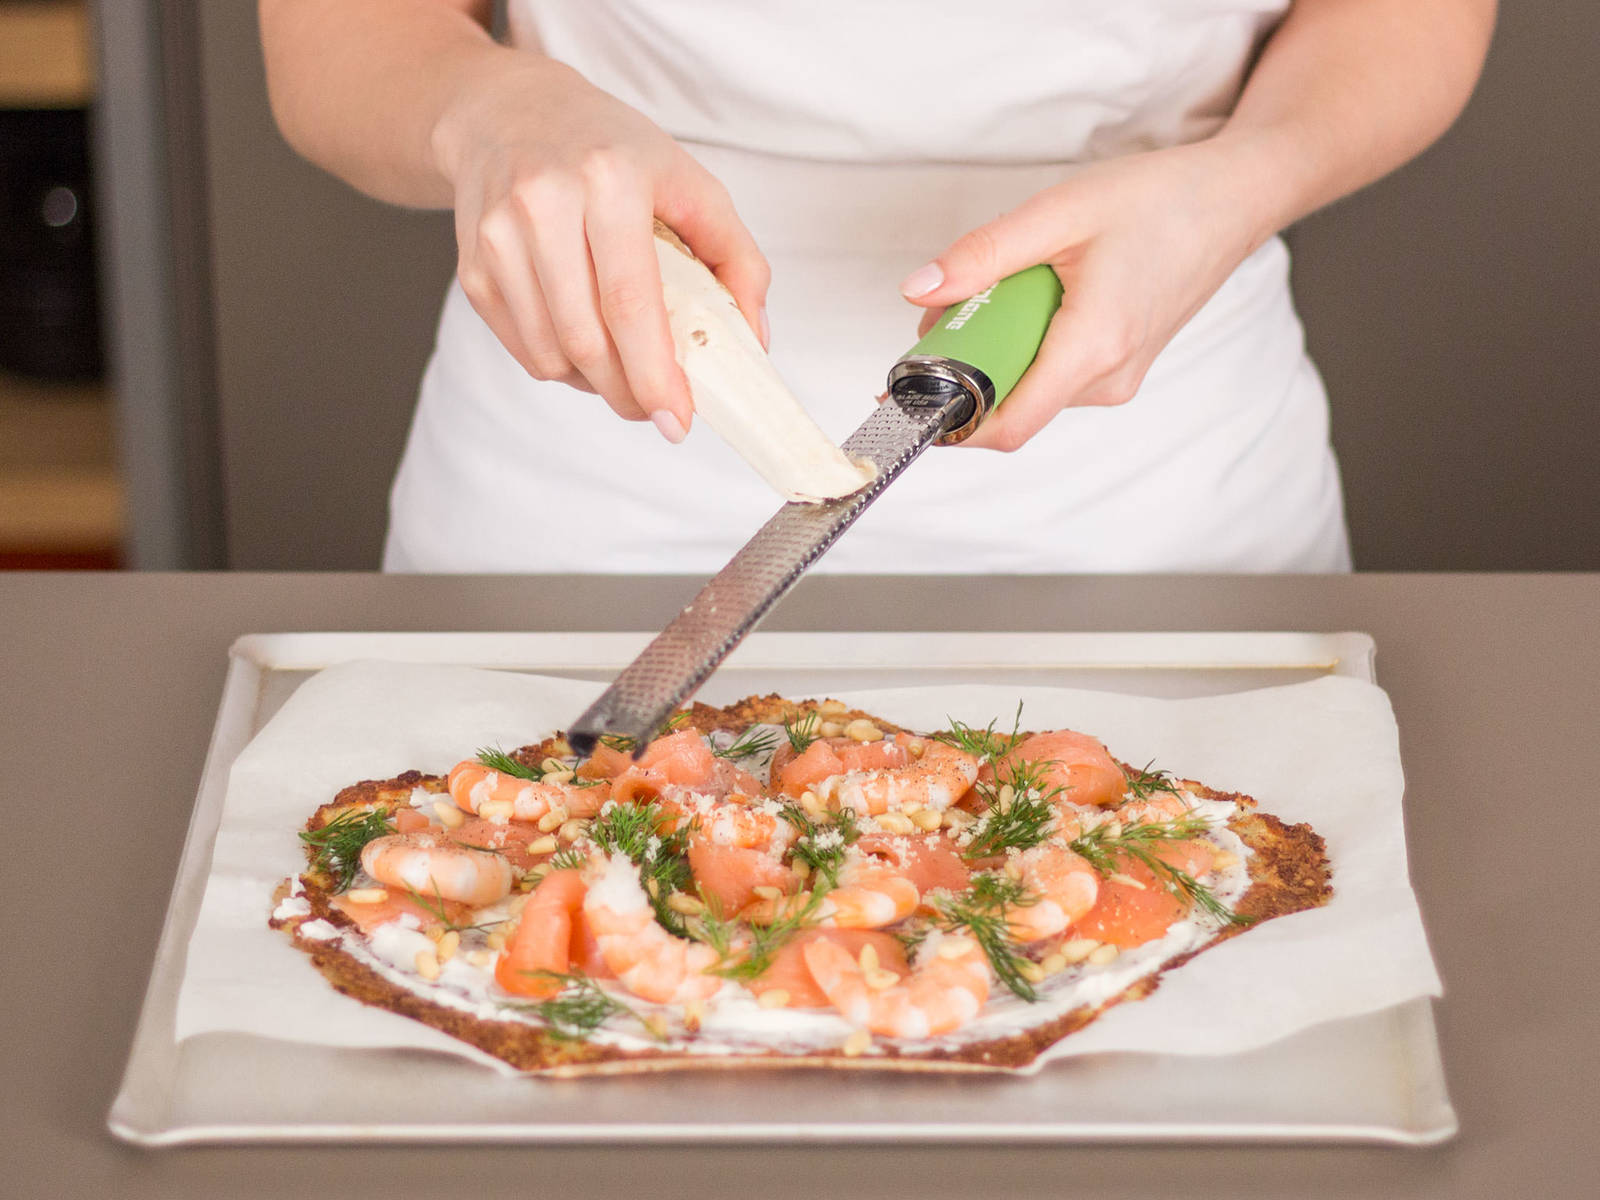 Spread ricotta evenly over crust. Then, top pizza off with salmon, shrimp, pine nuts, and freshly grated horseradish. Garnish with fresh dill.